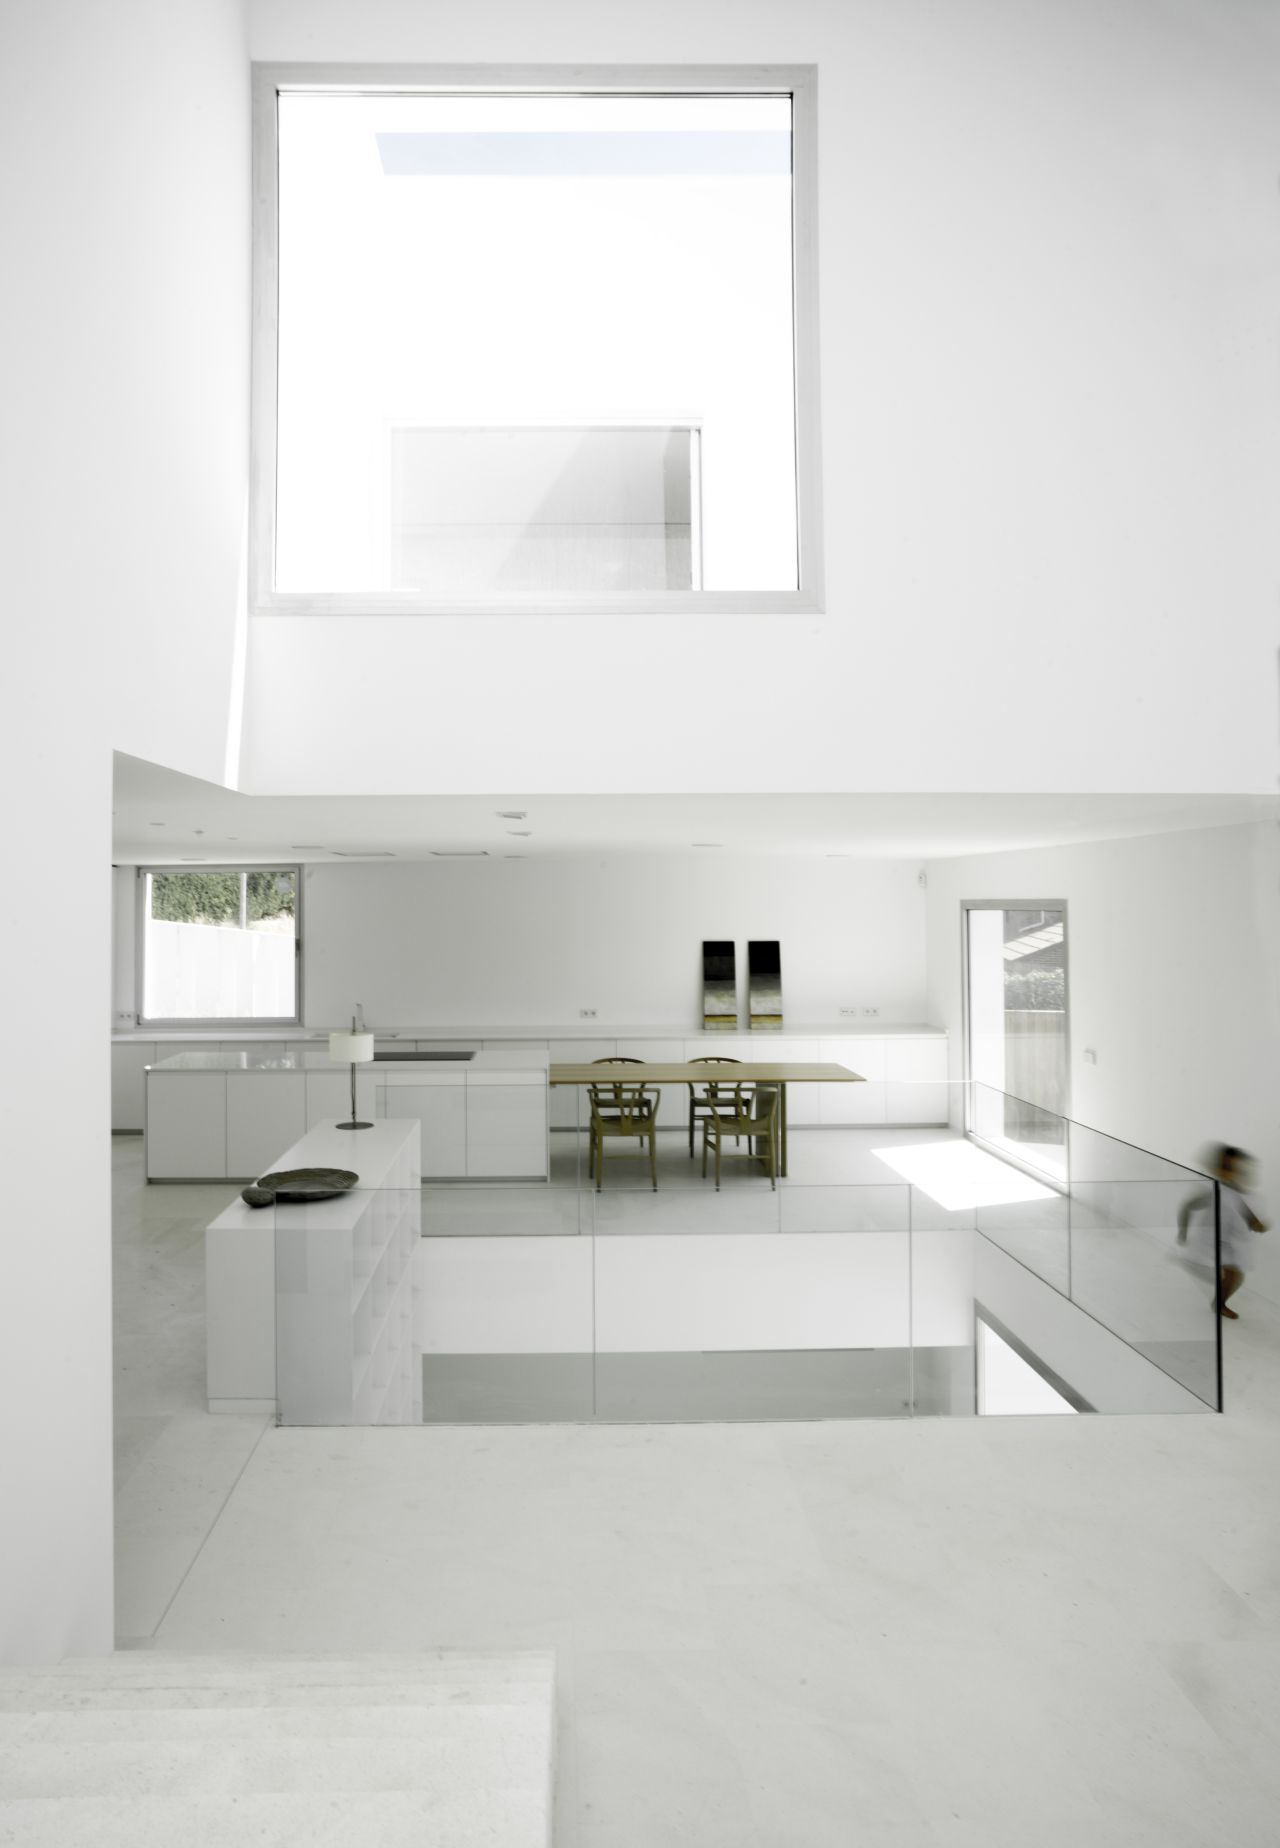 This house is nine metres wide and twenty metres long. On the short side, facing east: a custom made streamlined kitchen without shelving, in white like the rest of the décor. In the foreground:...